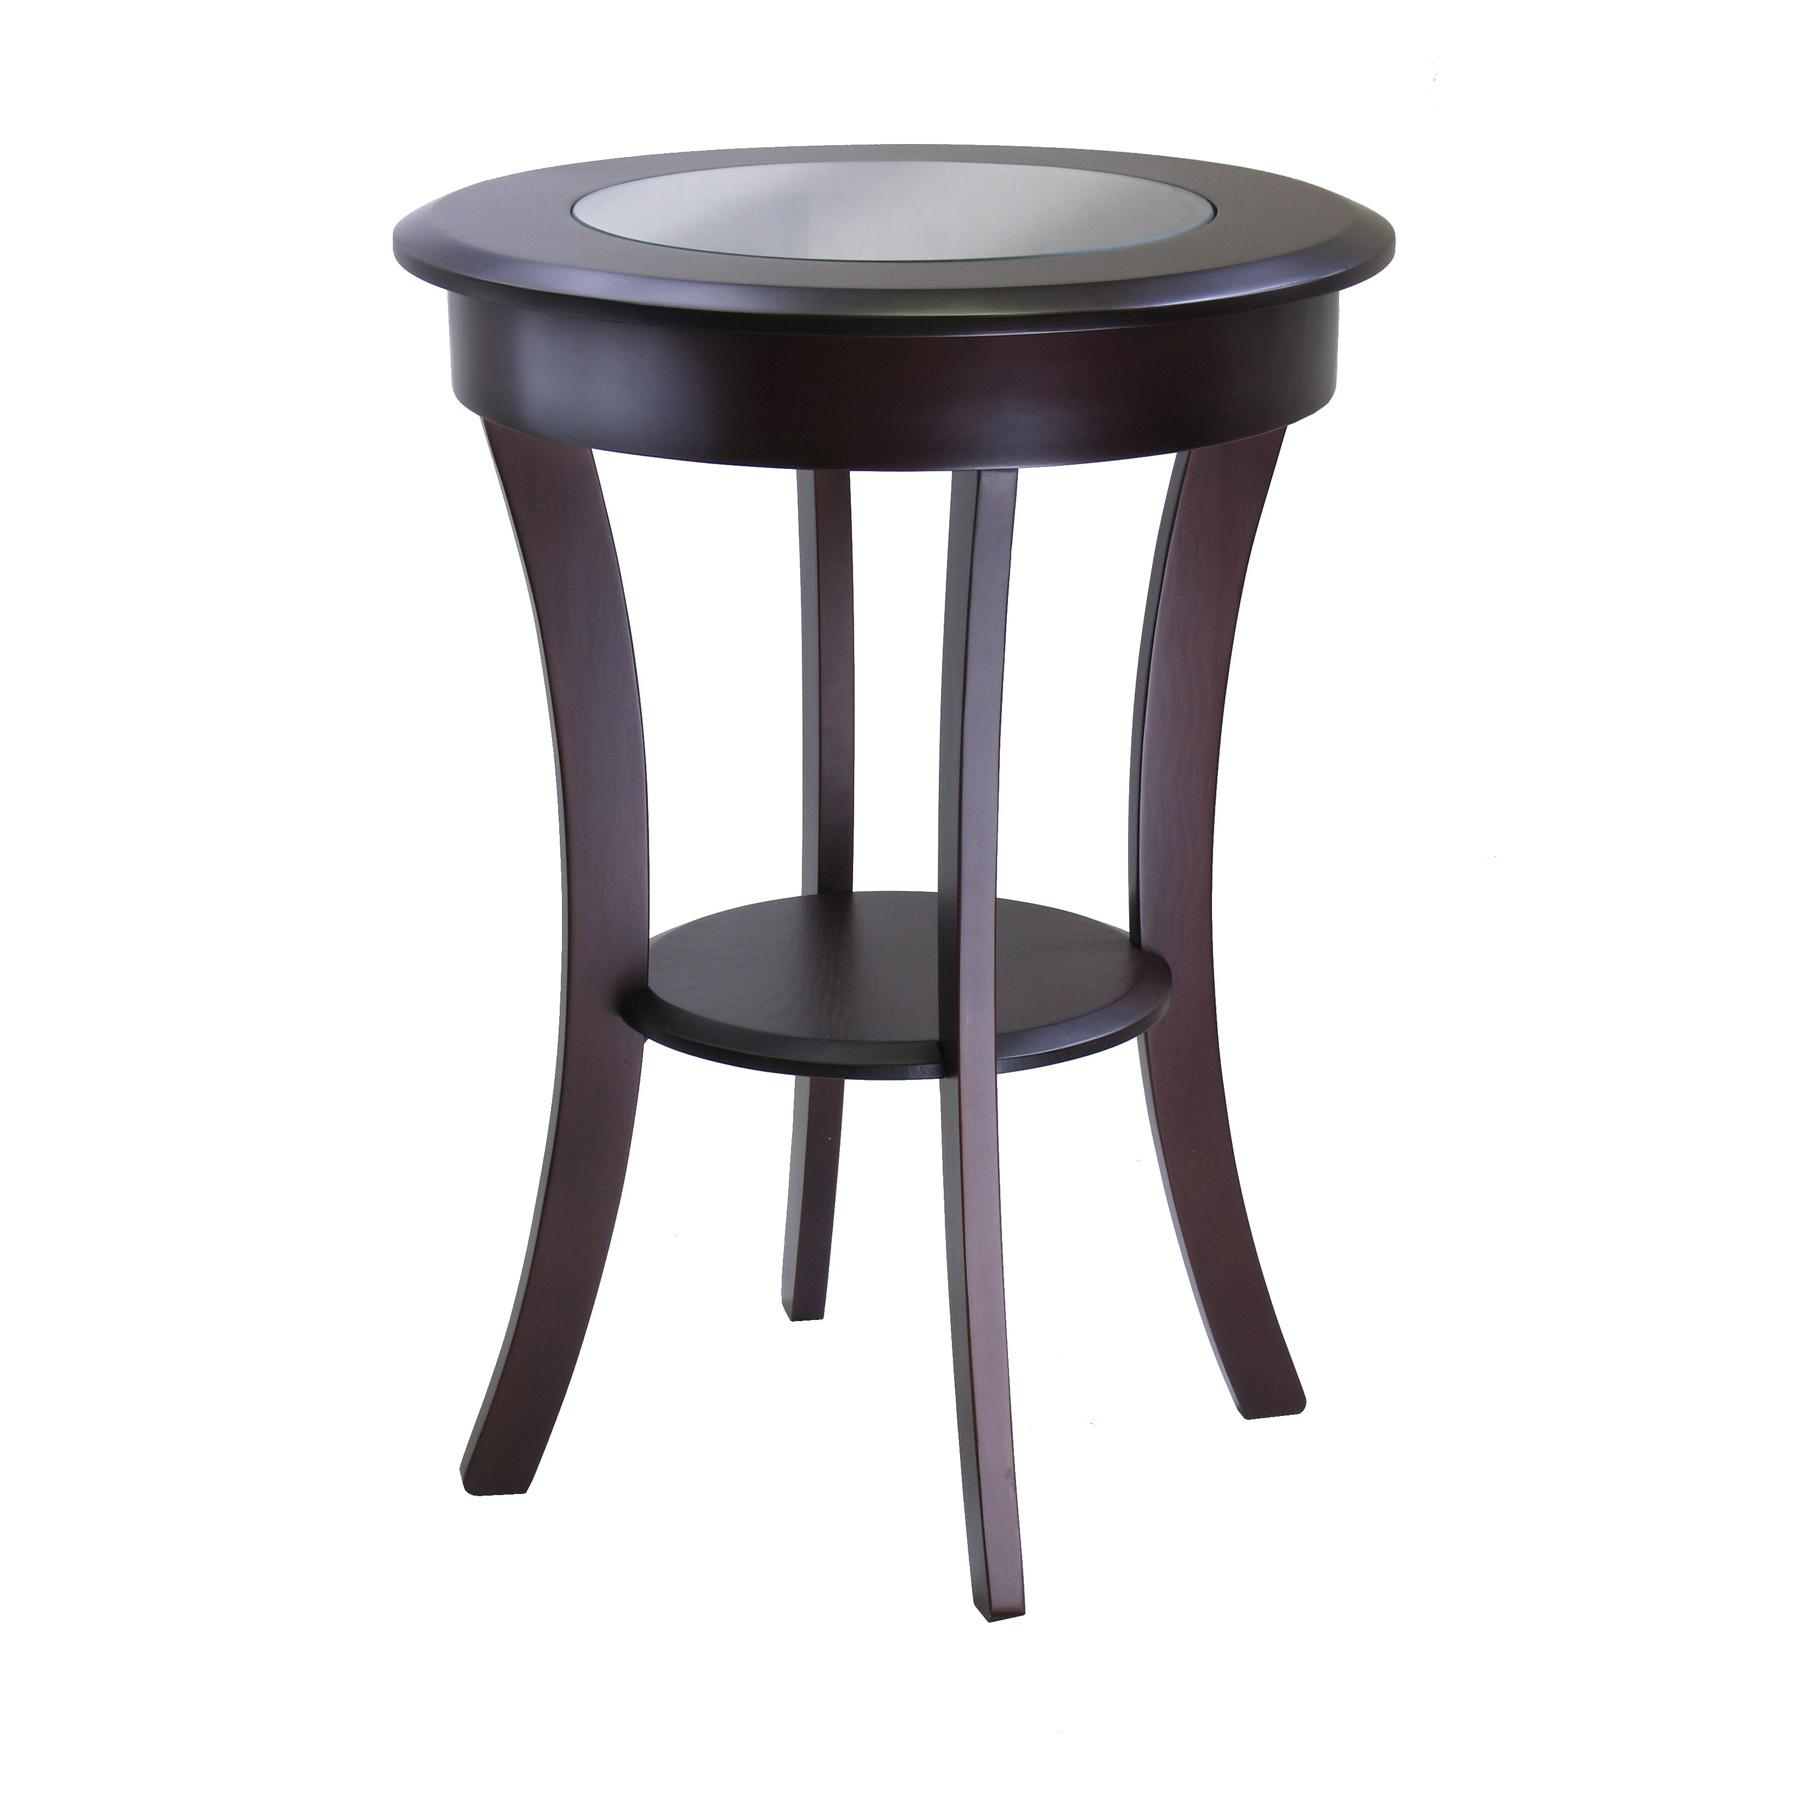 wonderful tall thin accent table baking desktop tablet padding word cups butter contents tabletop document tweakers nederlands tablespoons example kopen tablespoon toetsenbord